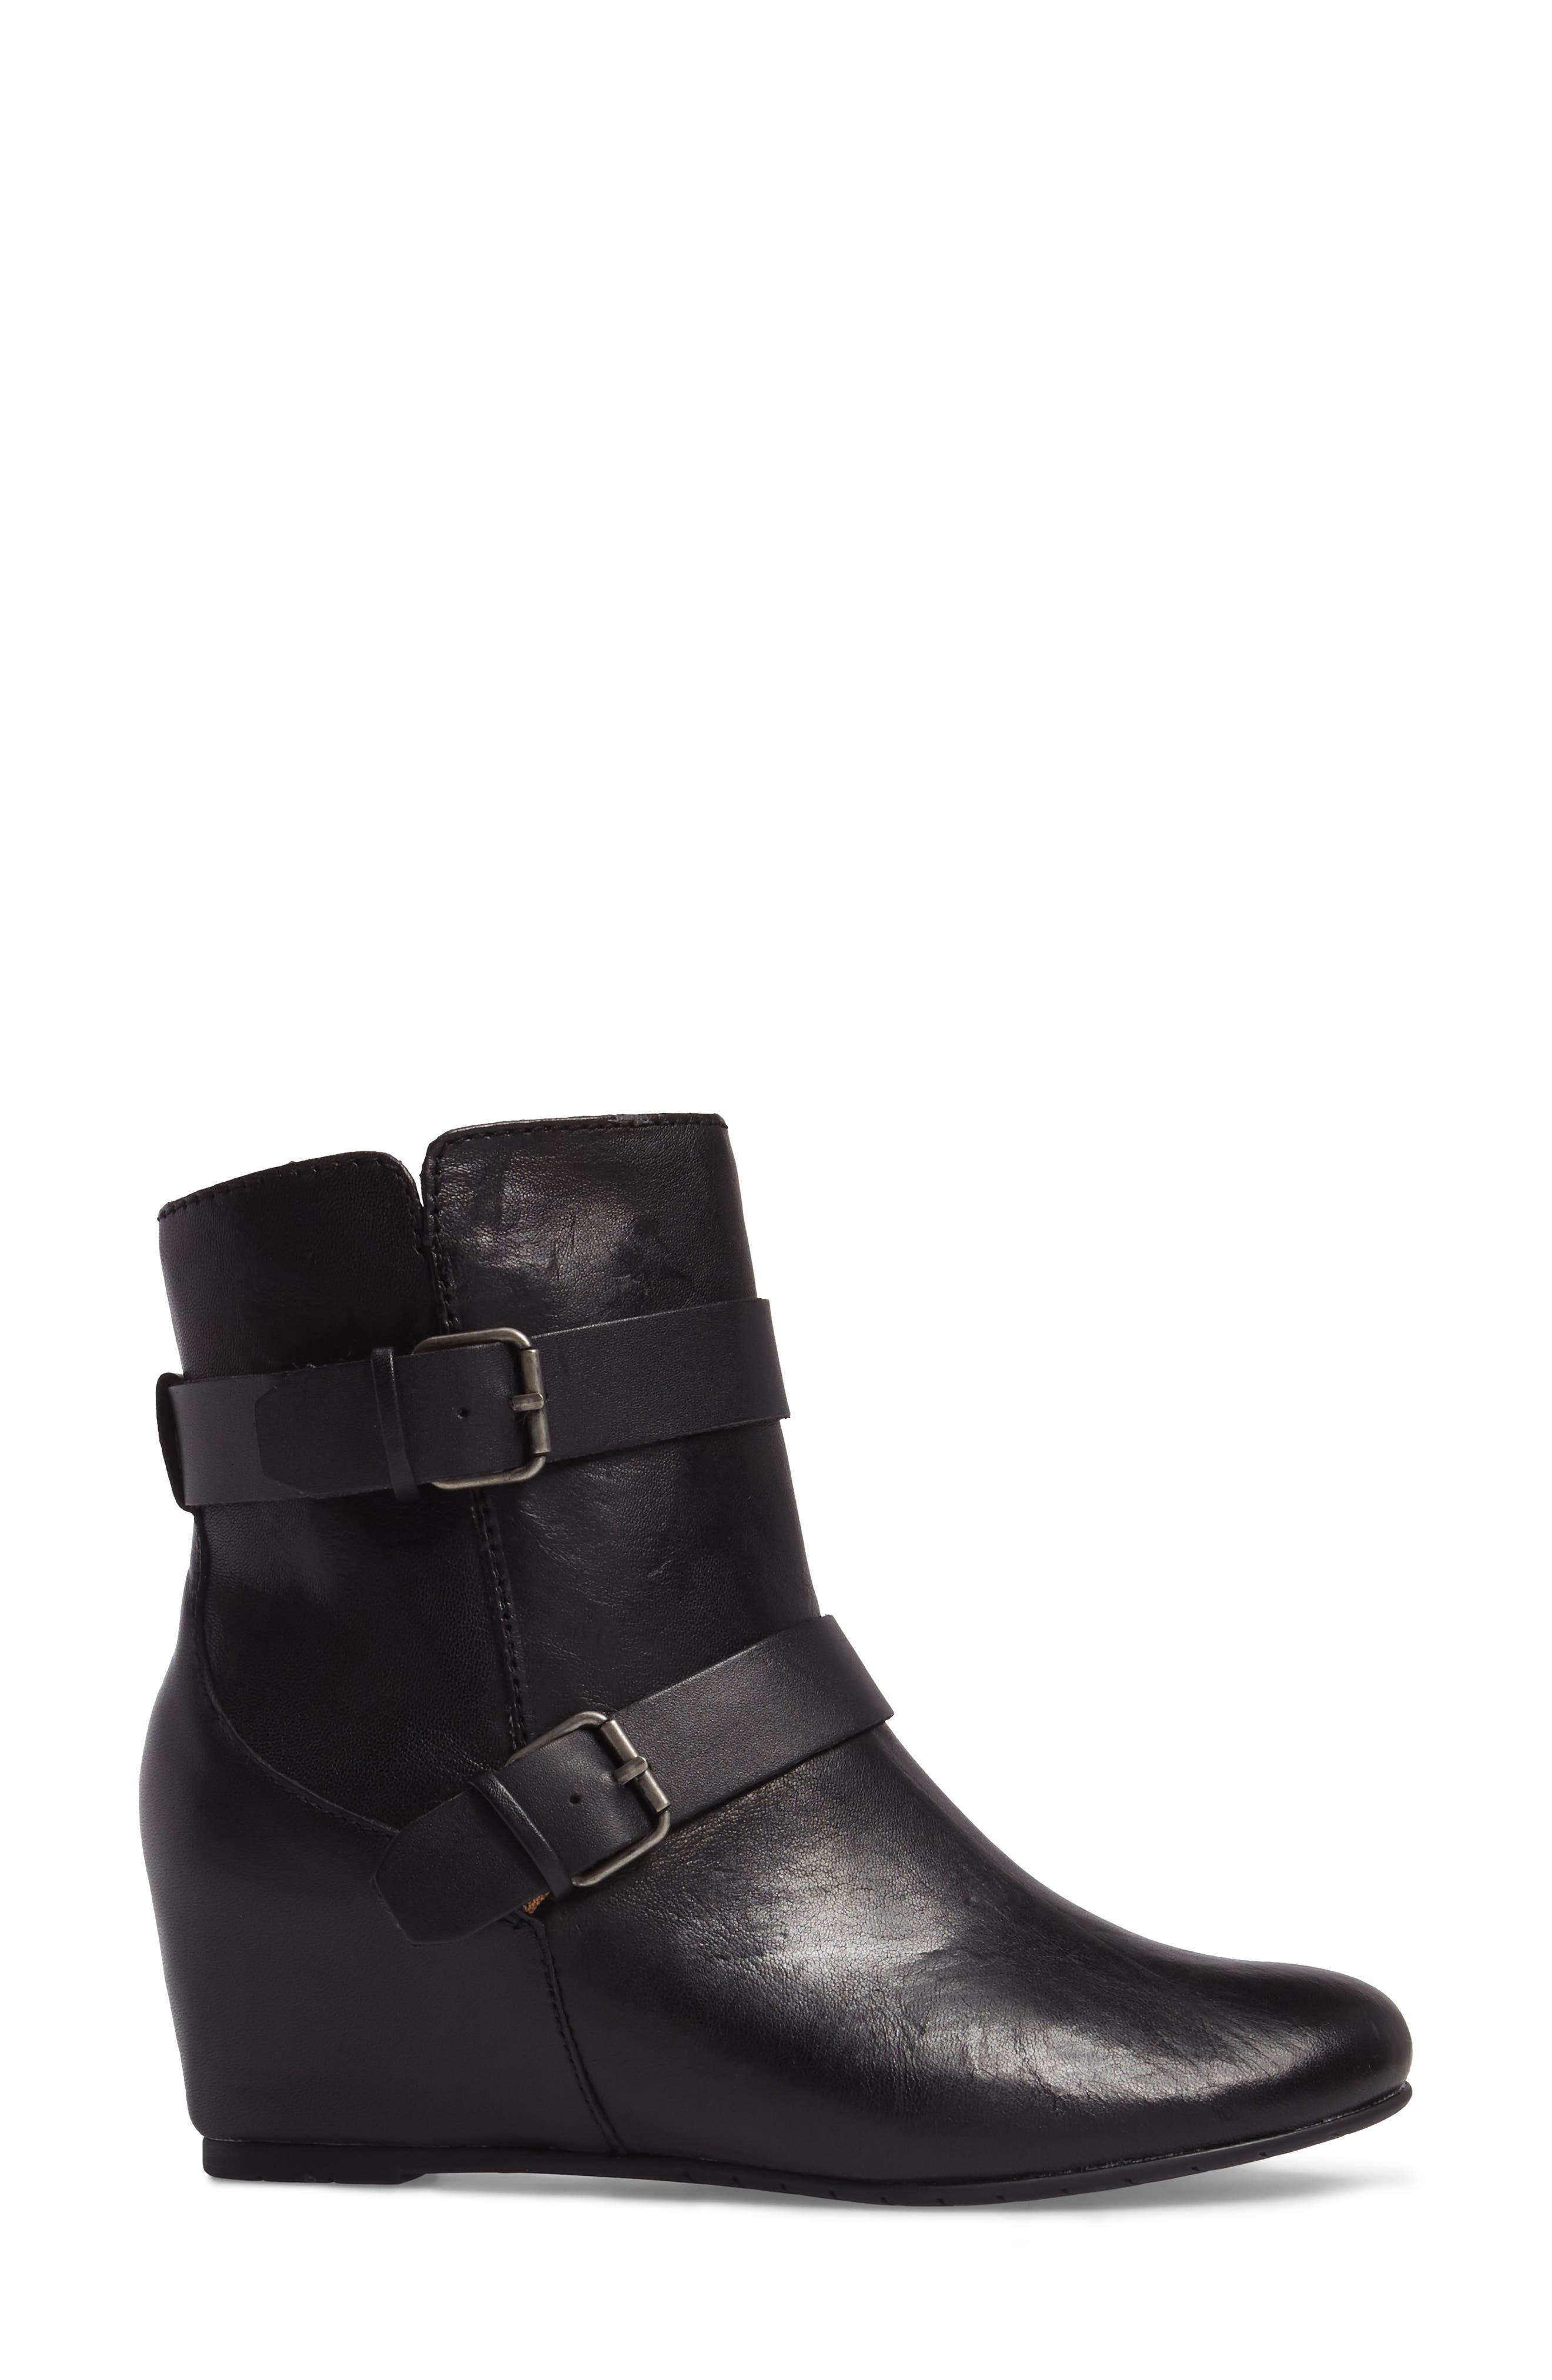 Ramika Wedge Bootie,                             Alternate thumbnail 3, color,                             001